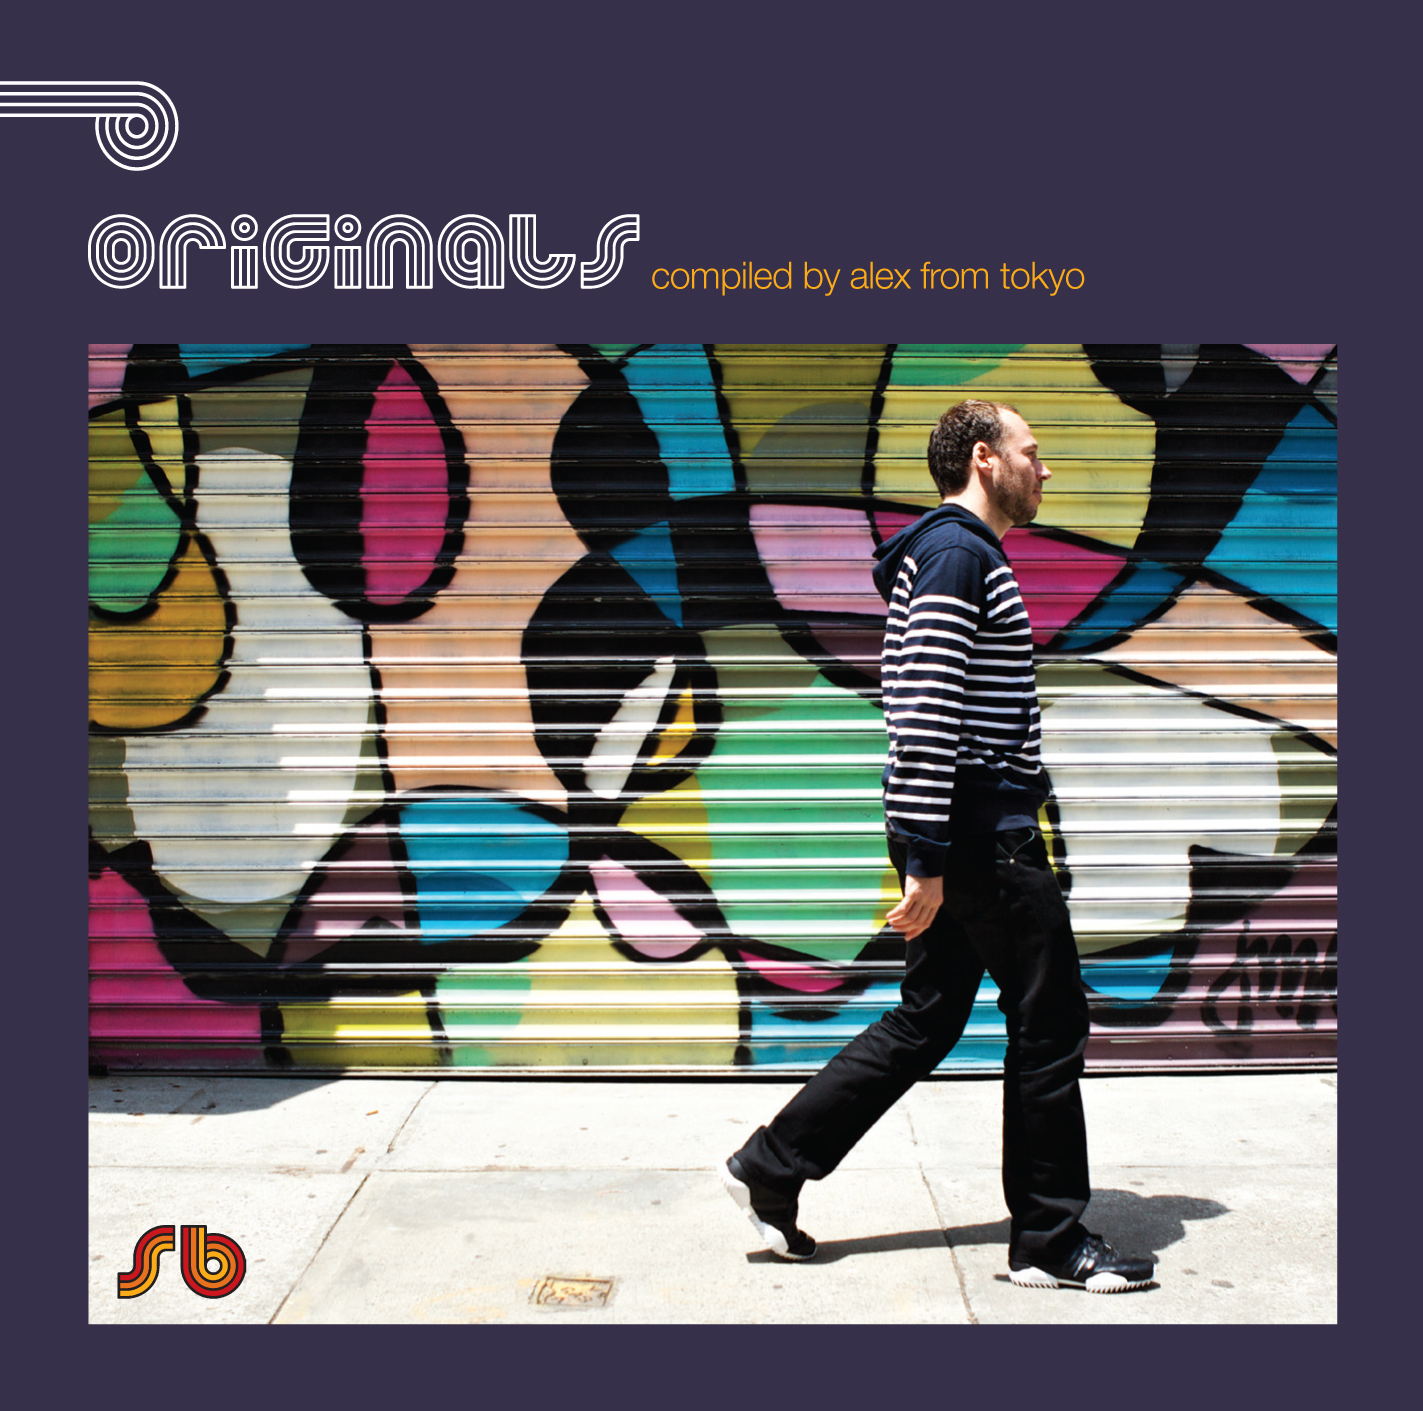 Alex From Tokyo/ORIGINALS VOL. 10 CD